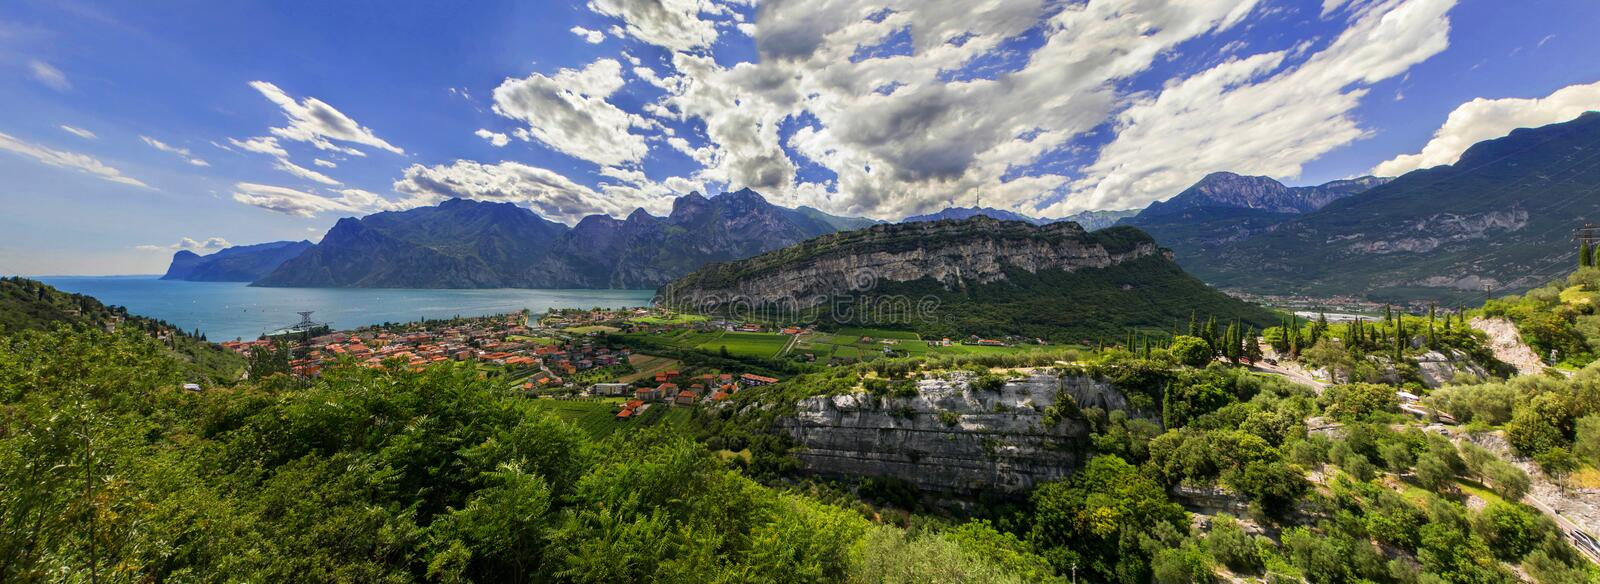 Italy lake and mountains stock photo